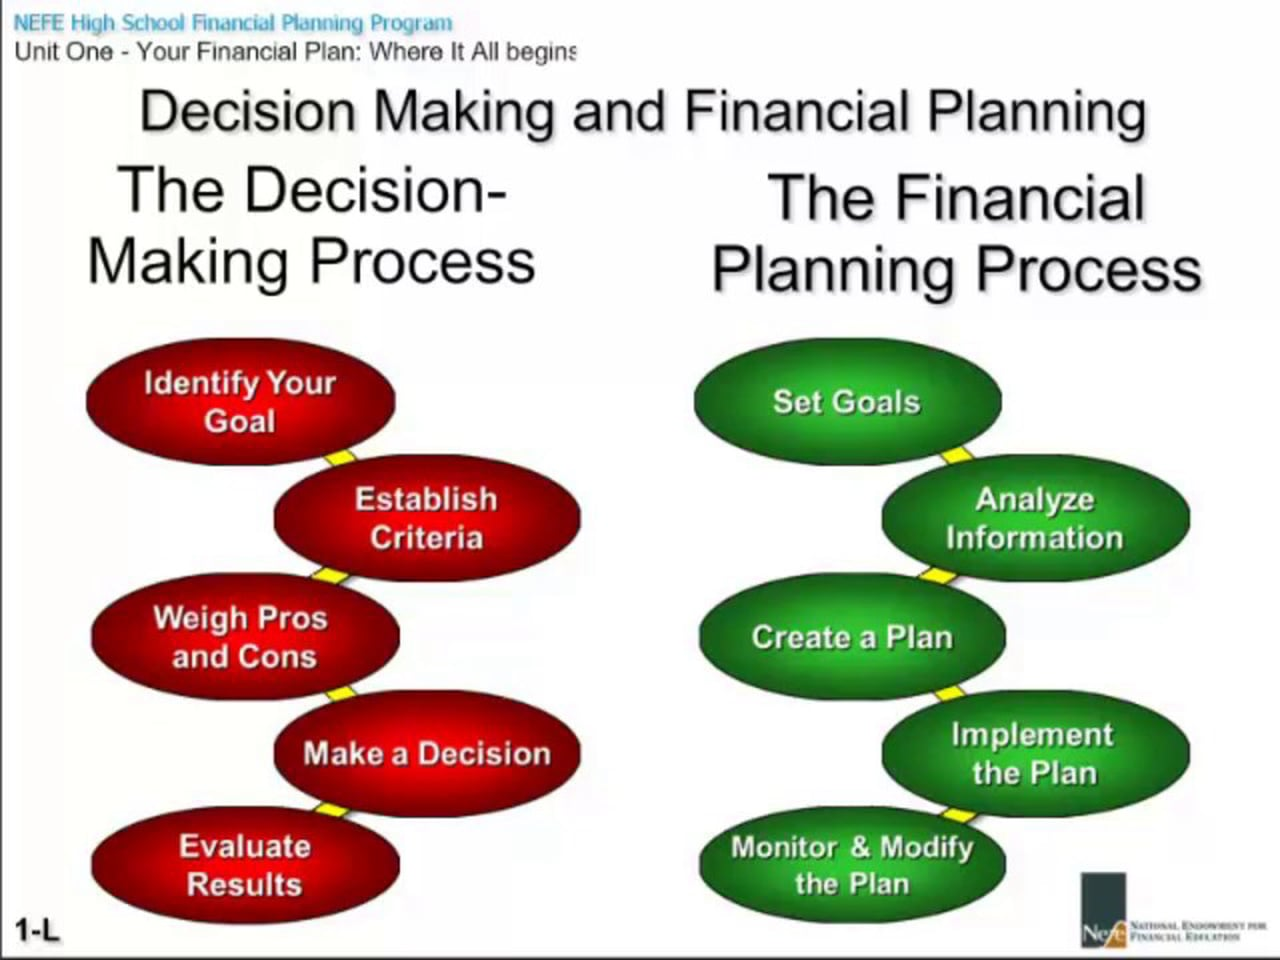 planning and decision making Planning and decision making - download as pdf file (pdf), text file (txt) or read online planning also implies: making choices from the diverse available opportunities decision and action here allocate i etc analysis the nature and scope of planning varies as per the leve of the manager.